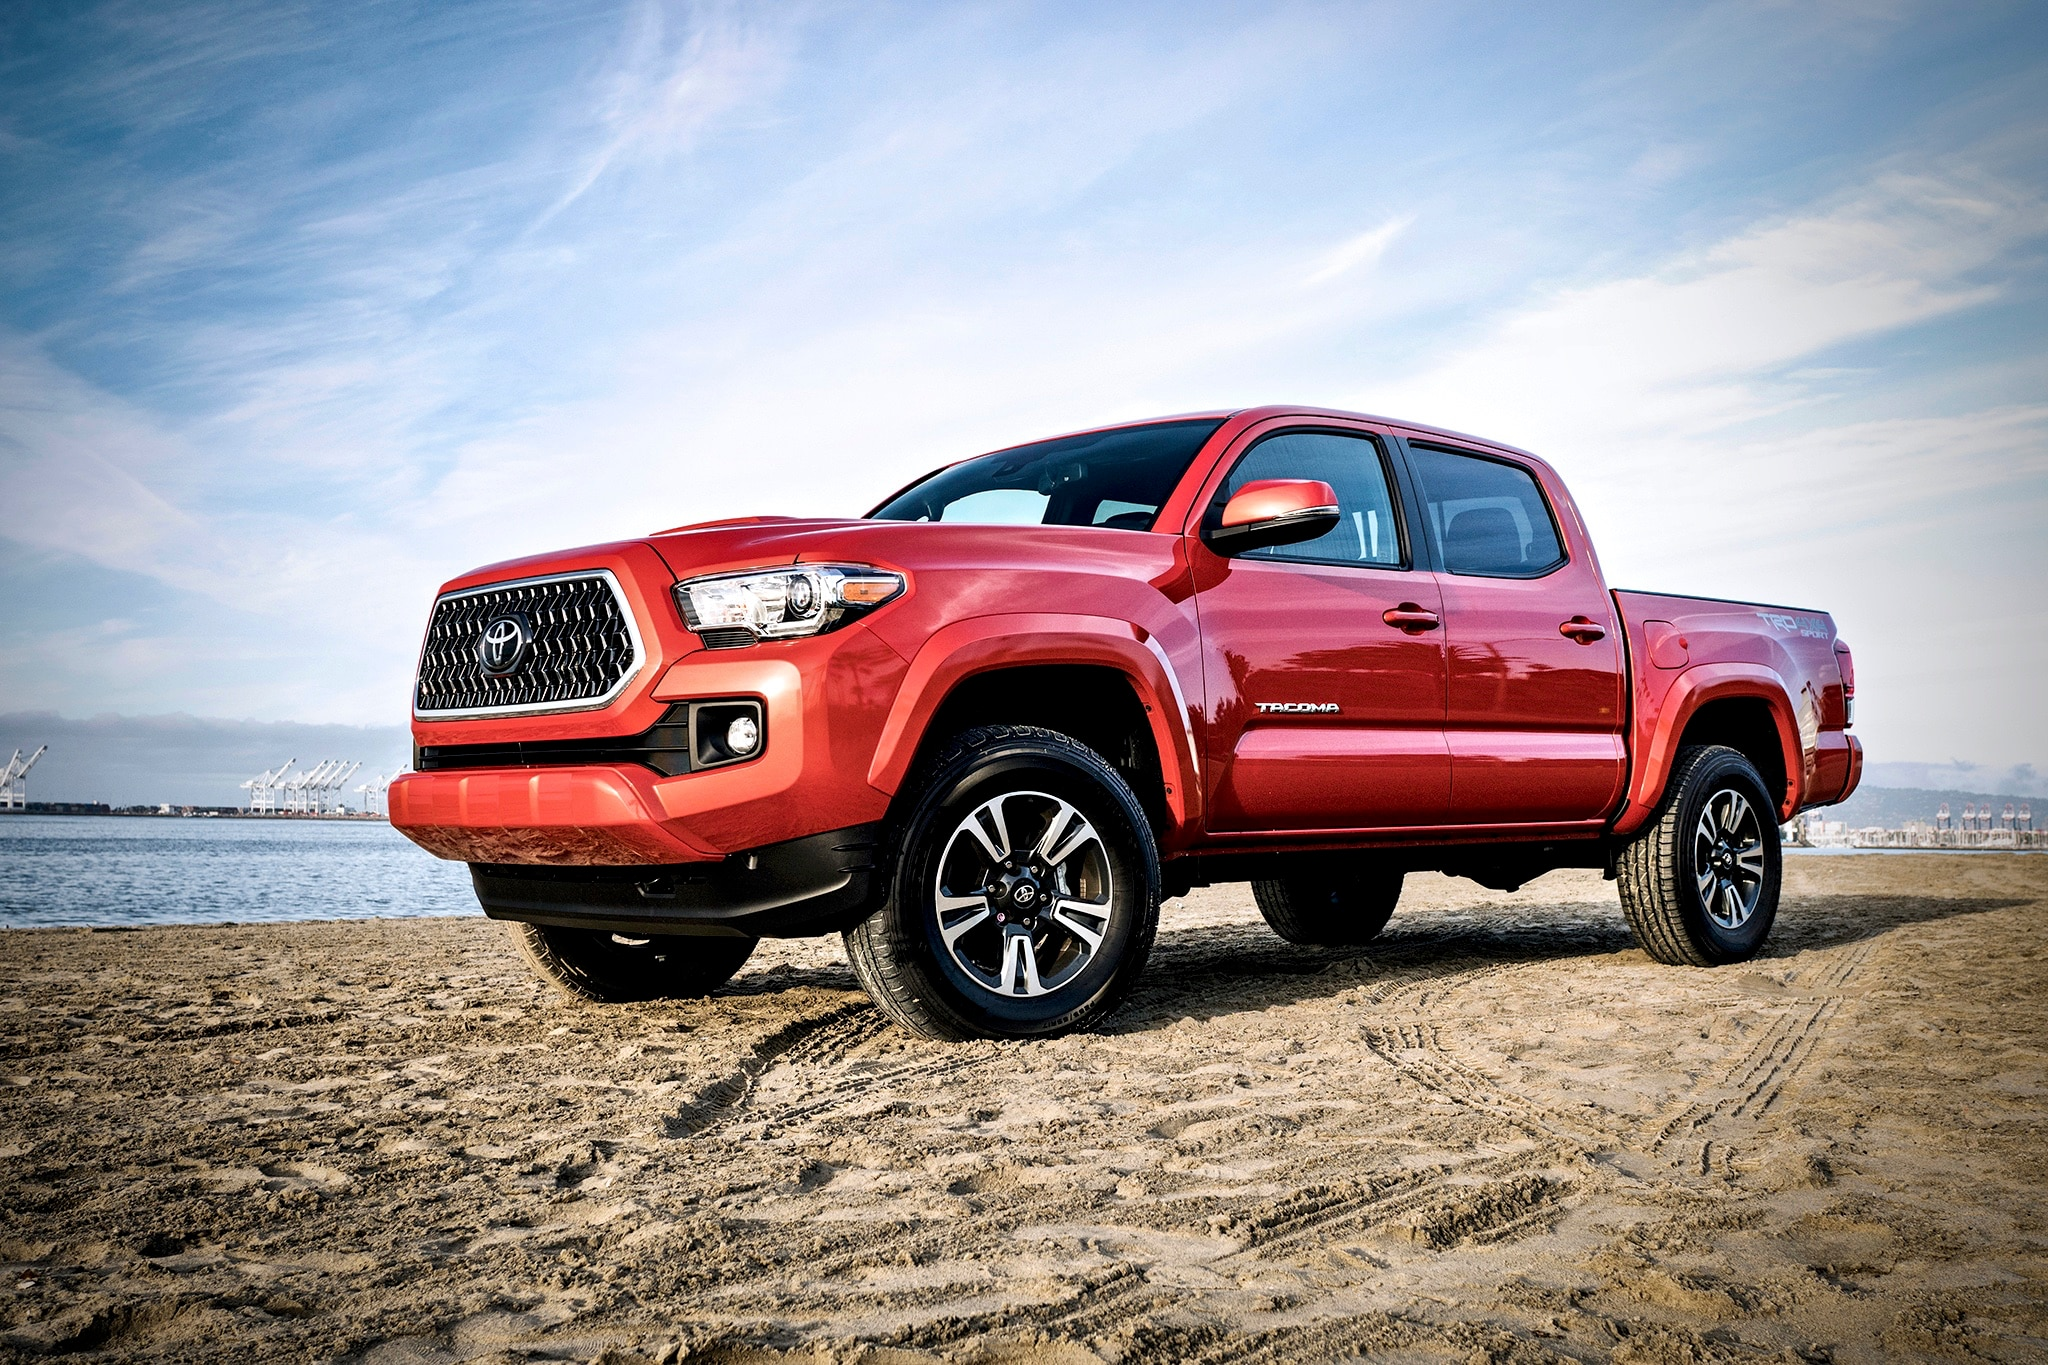 trd sport tacoma toyota fantastic five things system trucks redesign specs